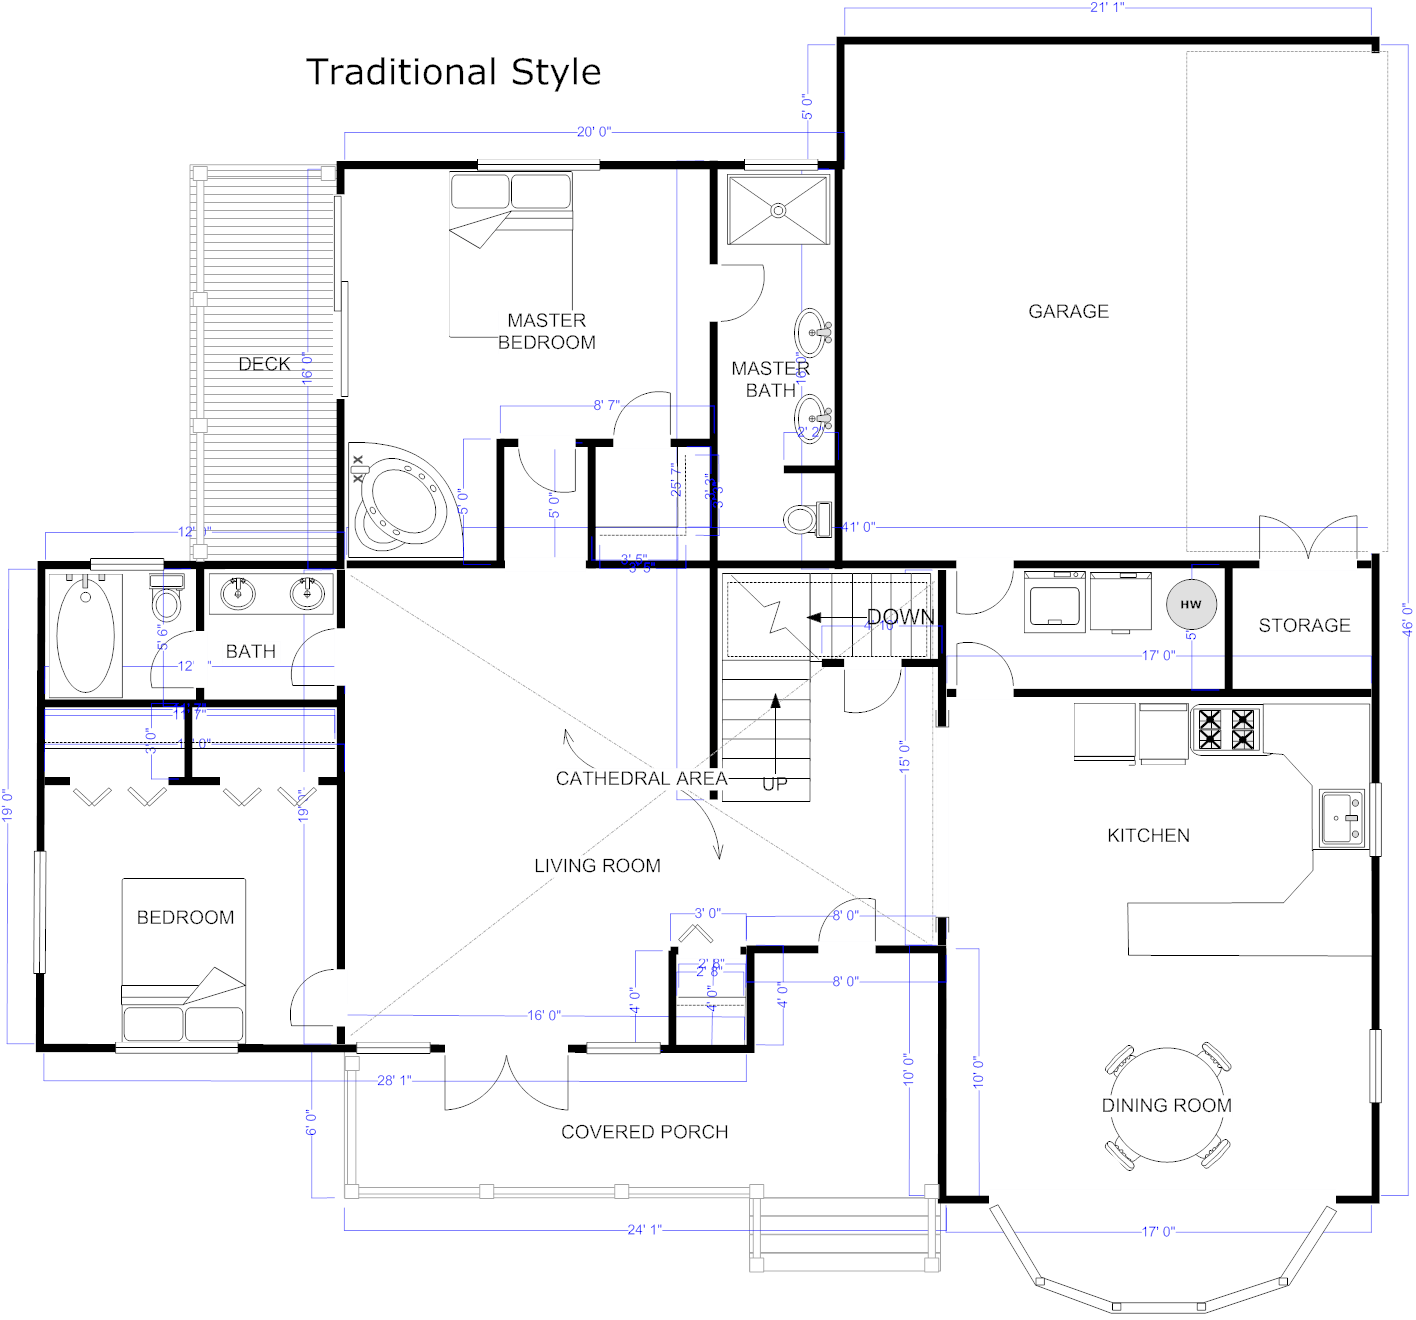 Beautiful Room Blueprint Maker Layout For Designing Home With 2d Design